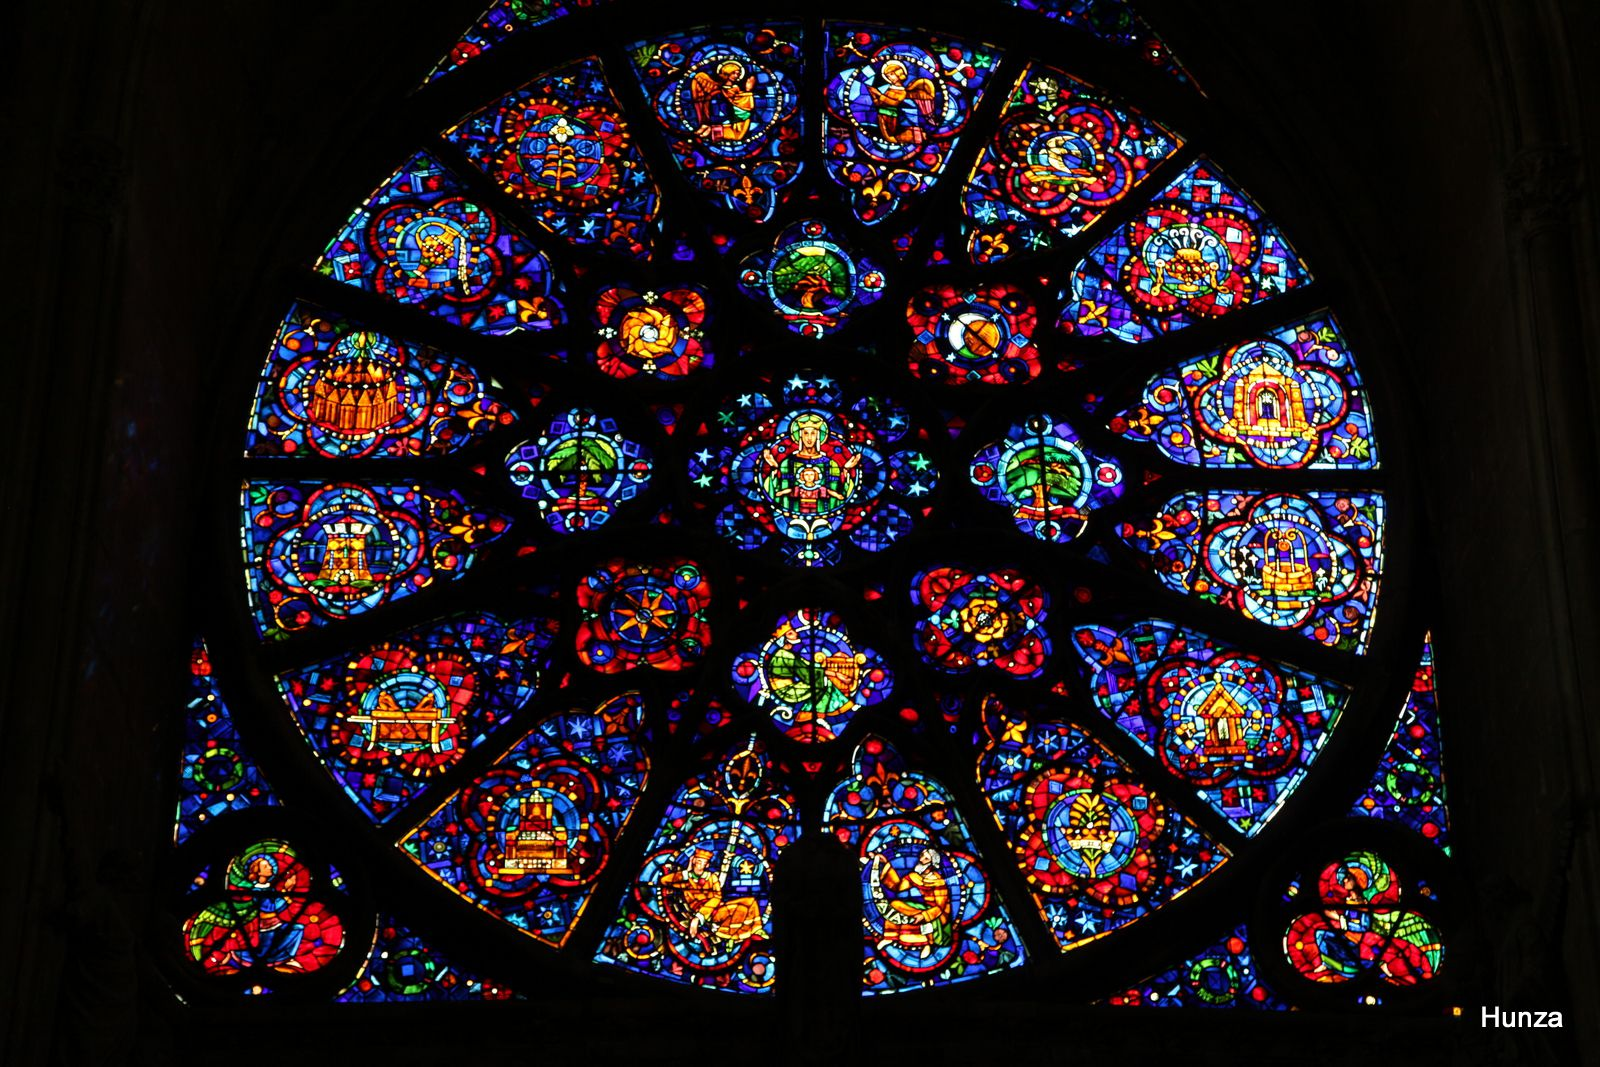 Cathédrale de Reims, rosace occidentale